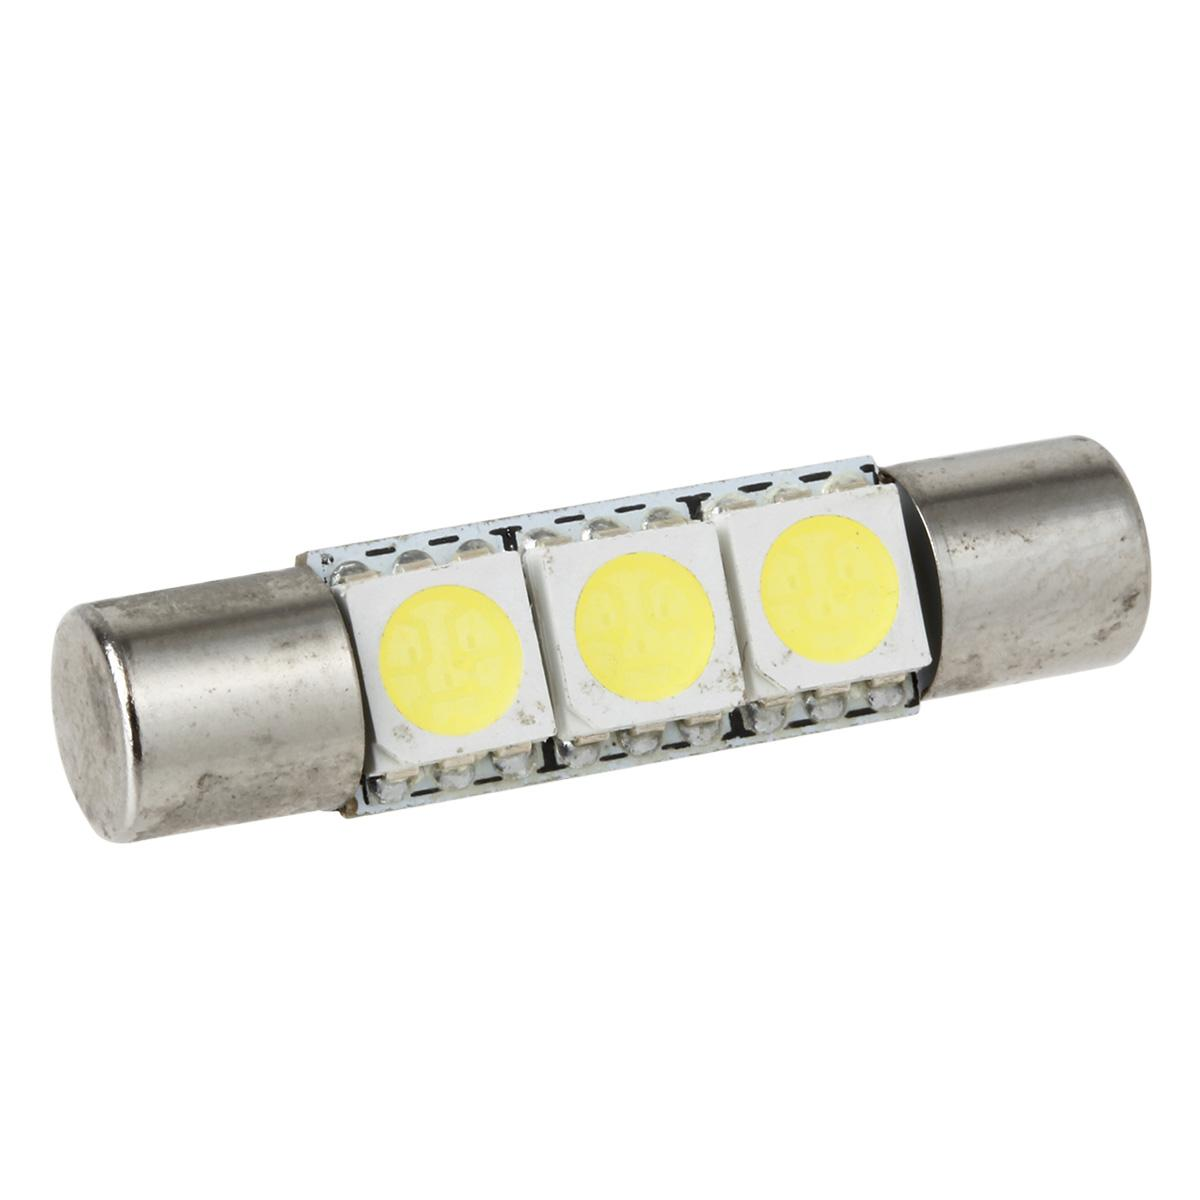 Vanity Lamp In Car : 10X Xenon White 3SMD 5050 LED Bulbs Interior Sun Visor Vanity Mirror Lights 6641 eBay